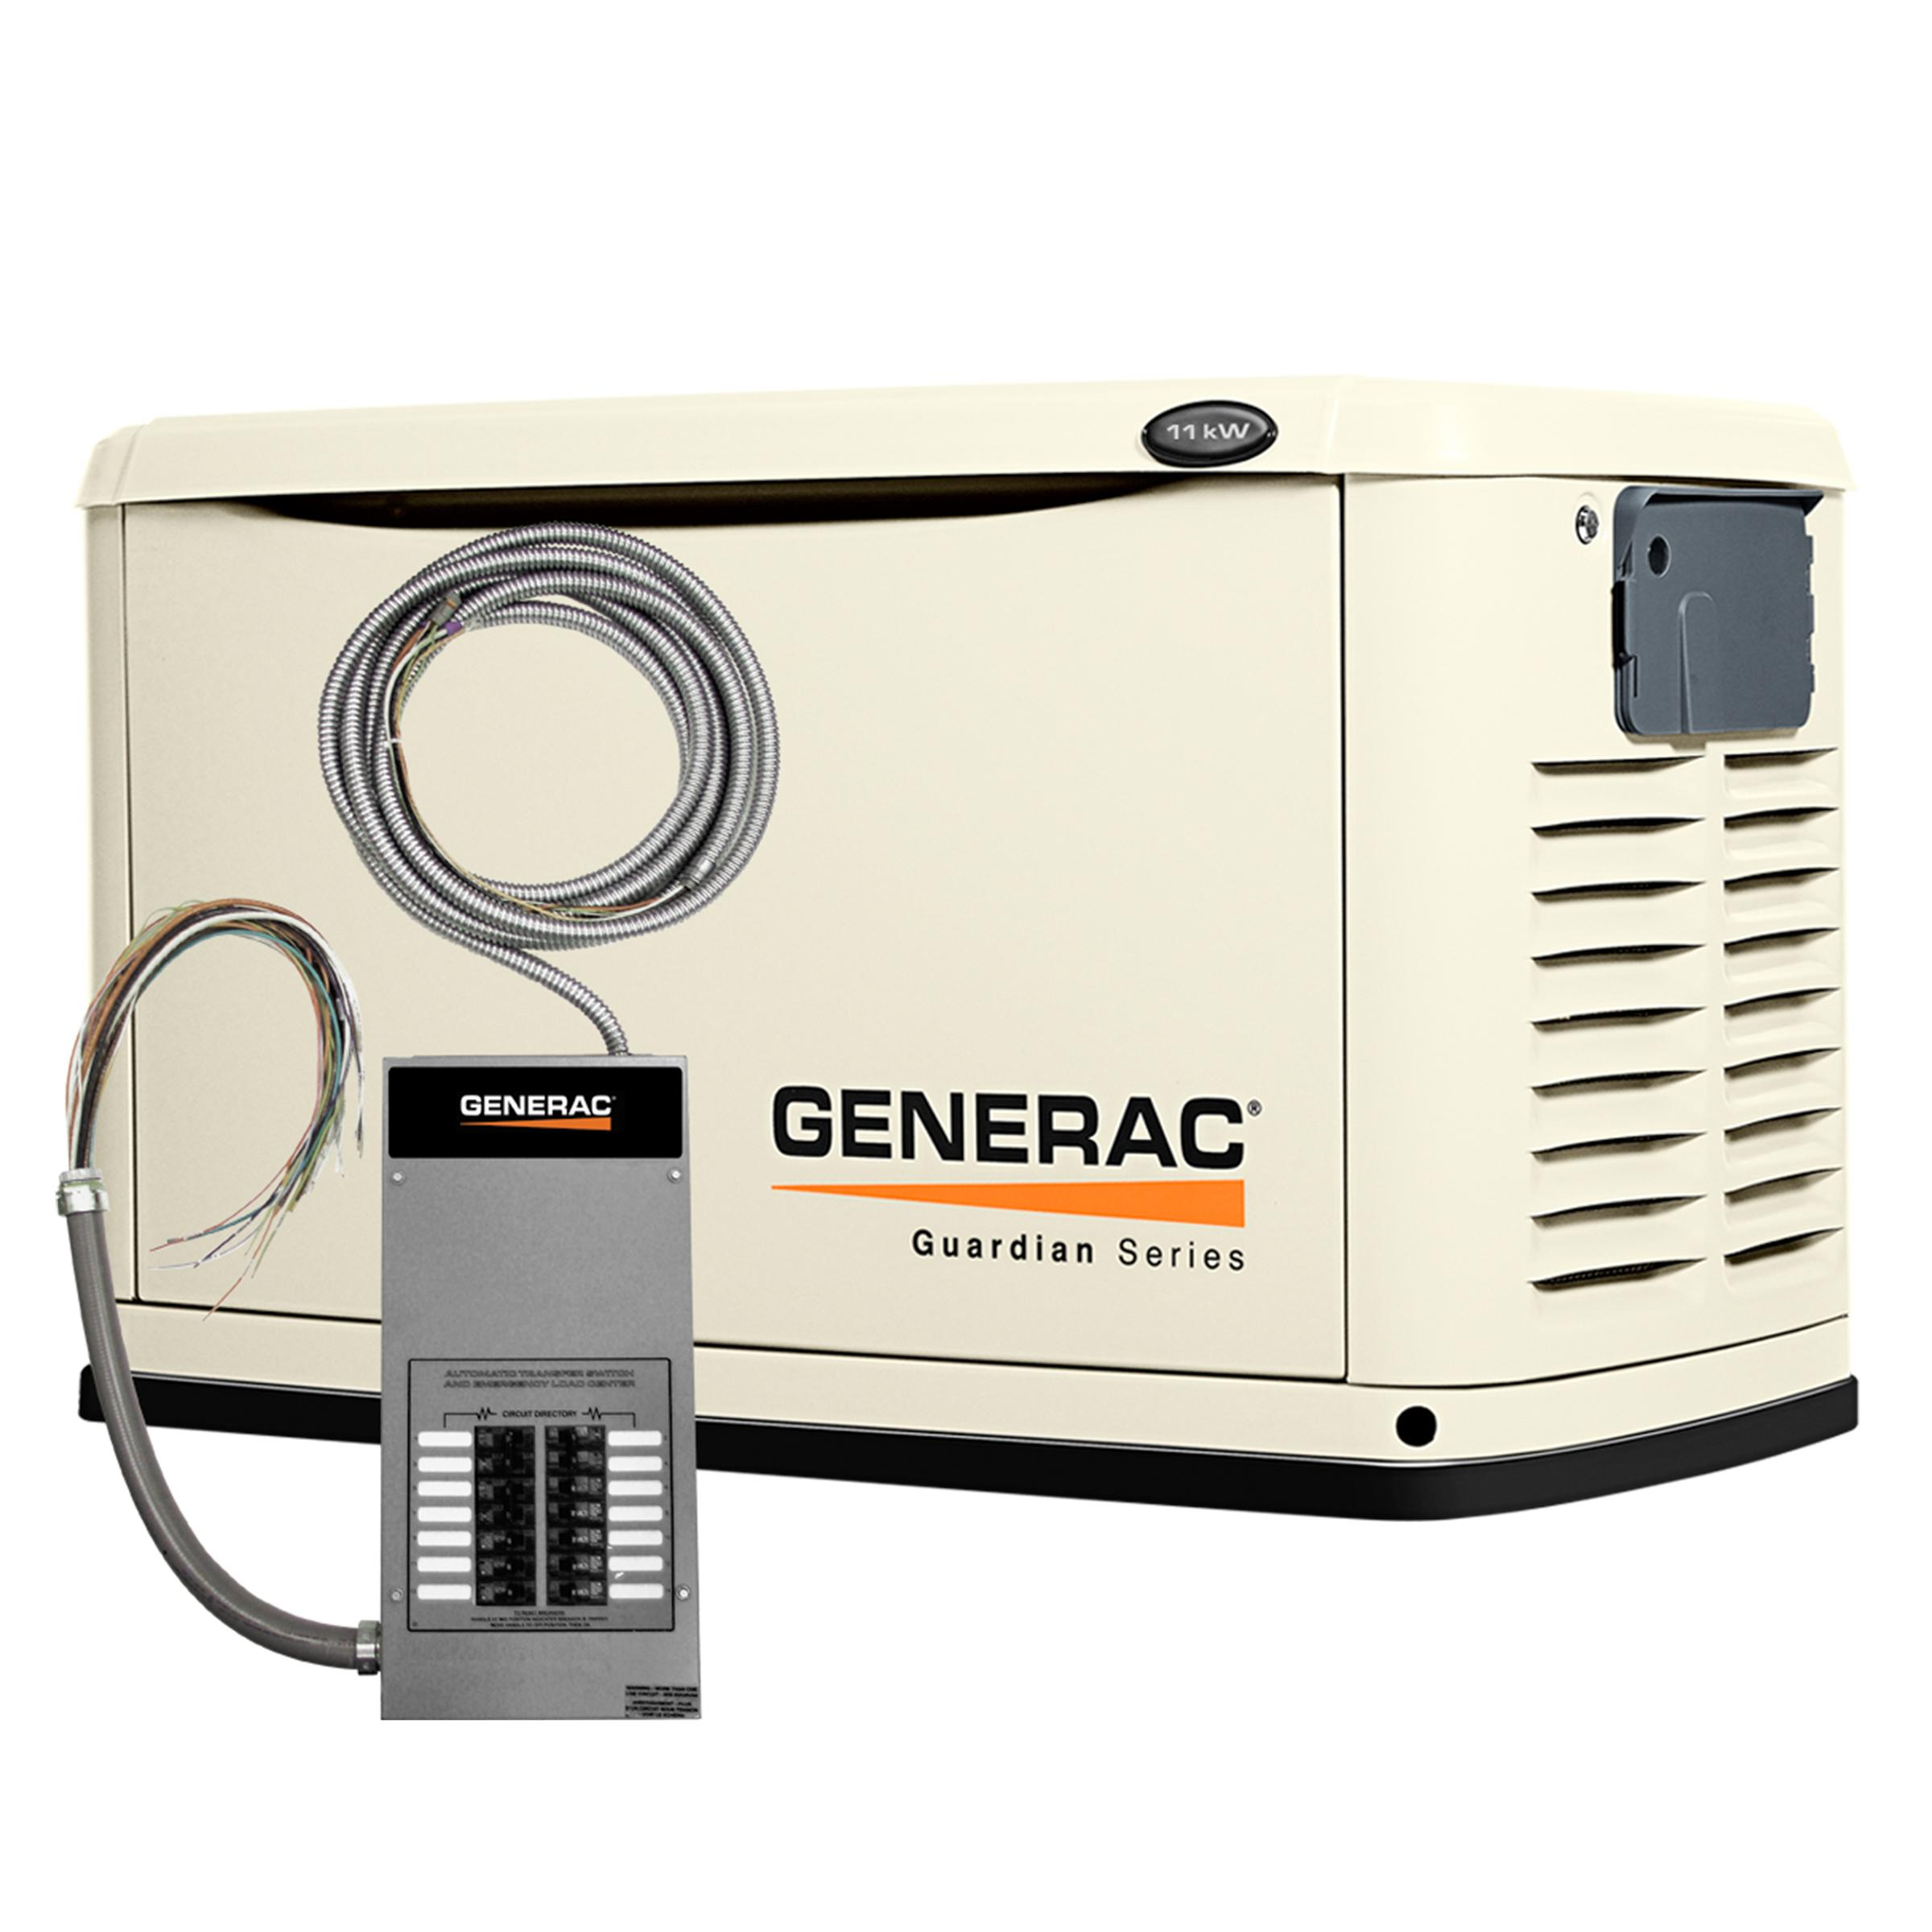 not CUL Generac 7033 Guardian Series 11kW//10kW Air Cooled Home Standby Generator with Whole House 200 Amp Transfer Switch